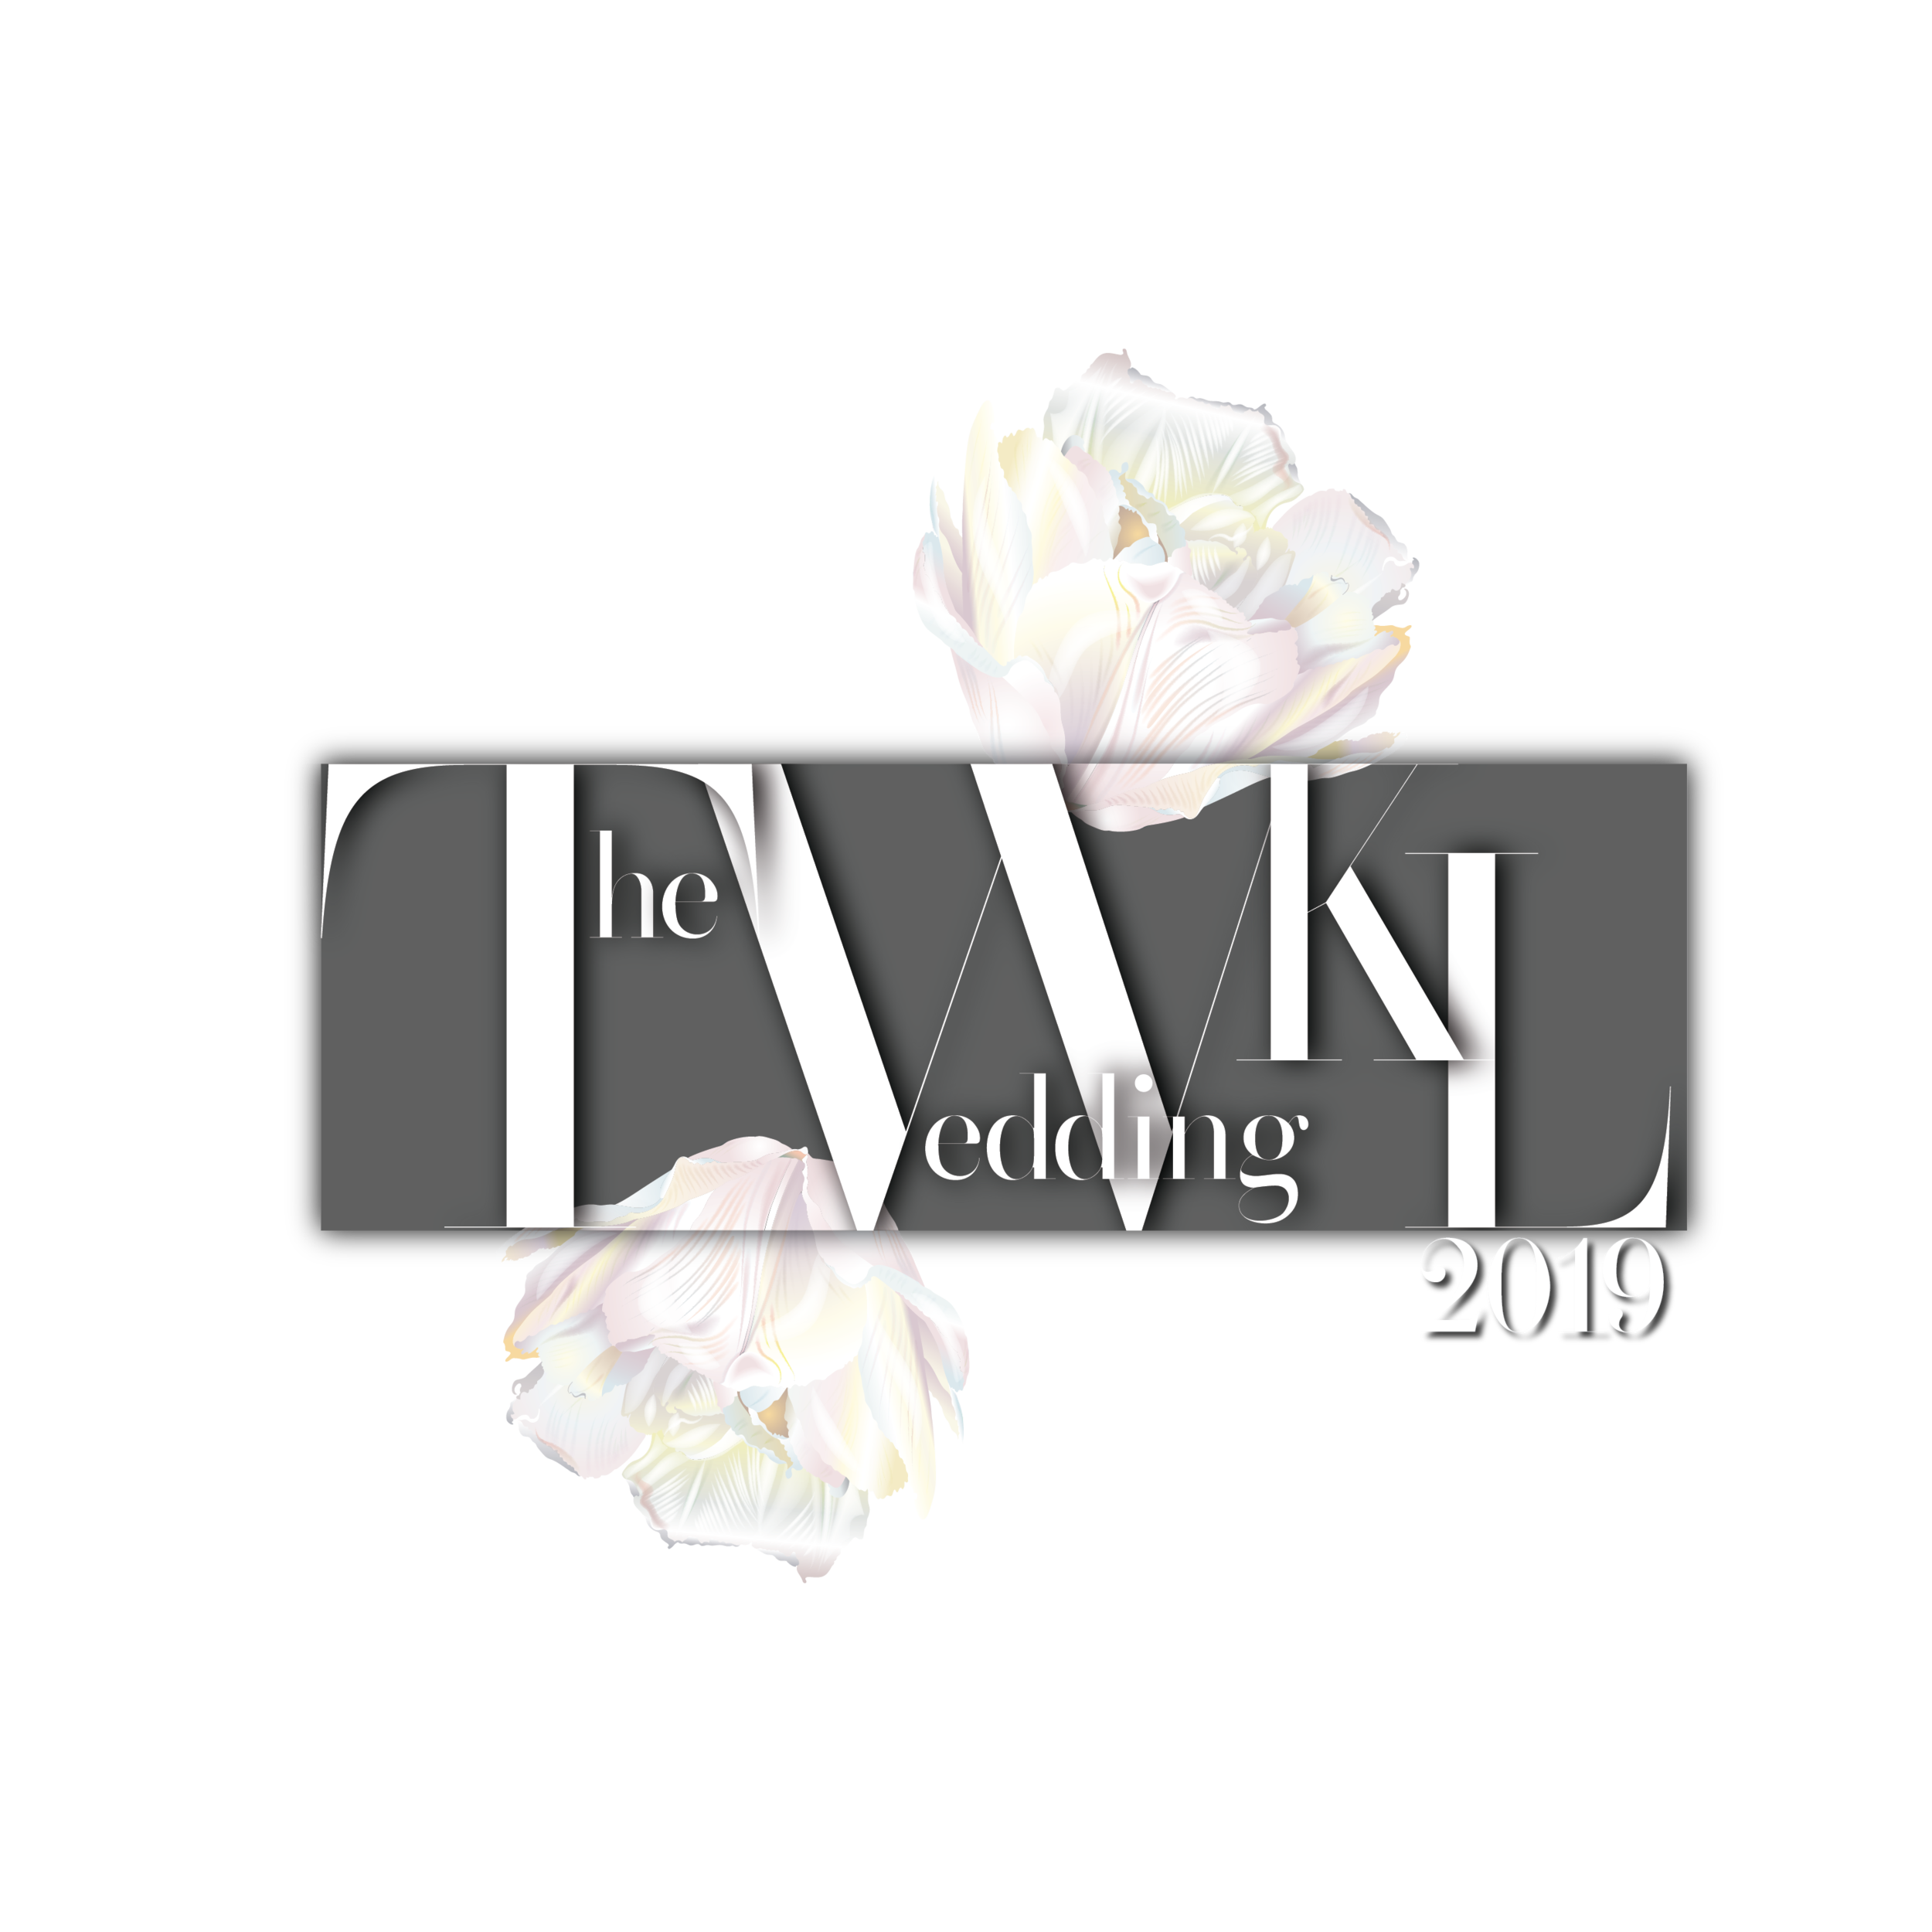 The_Wedding_KL_NEW-logo-2019-01.png